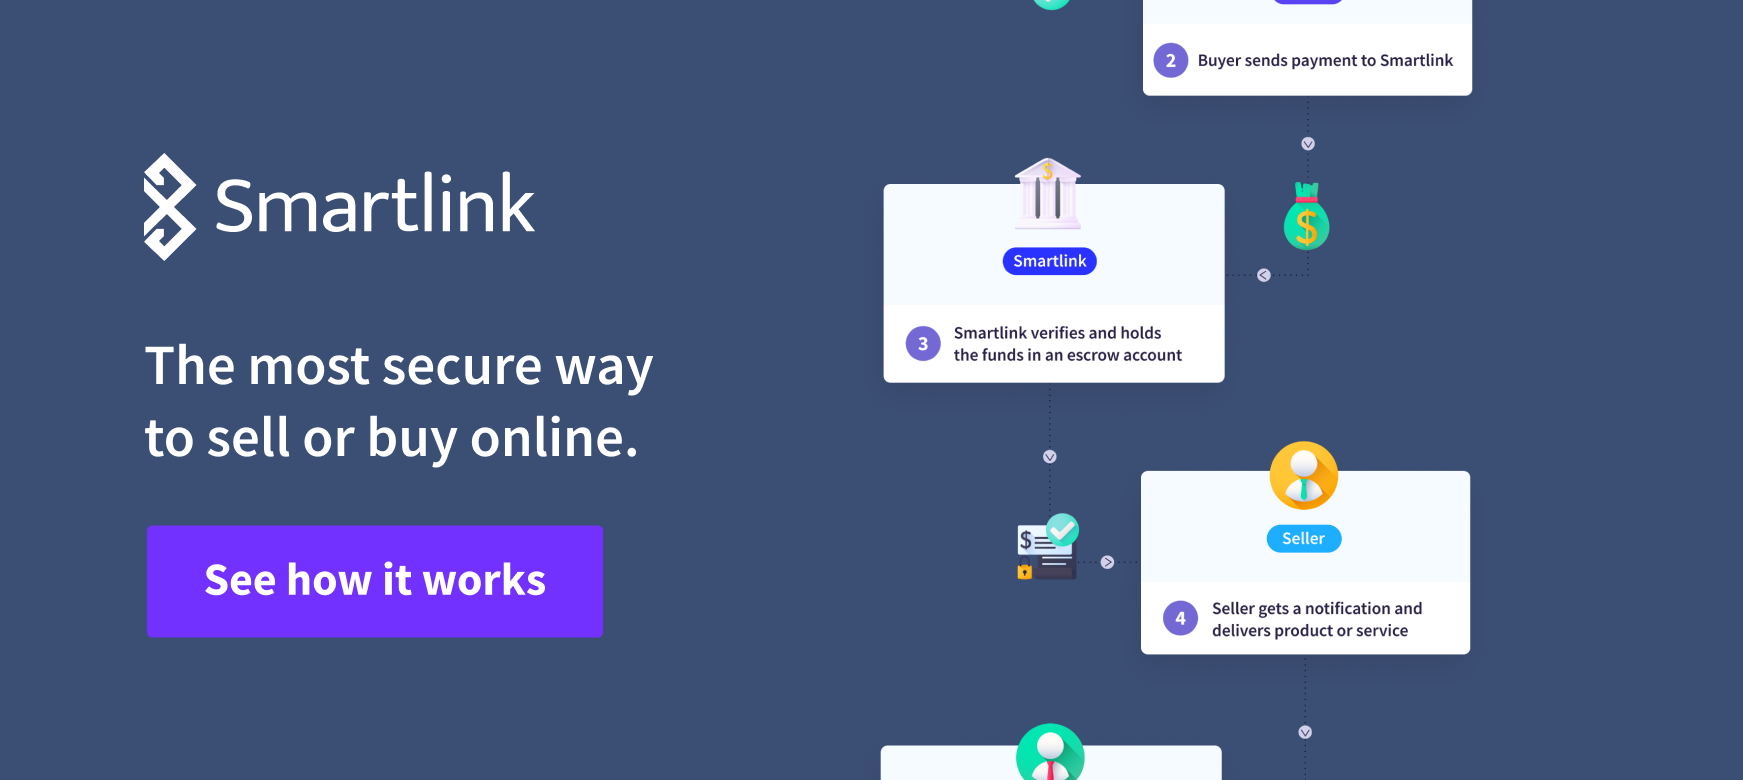 Smartlink - Smart contracts for smarter transactions